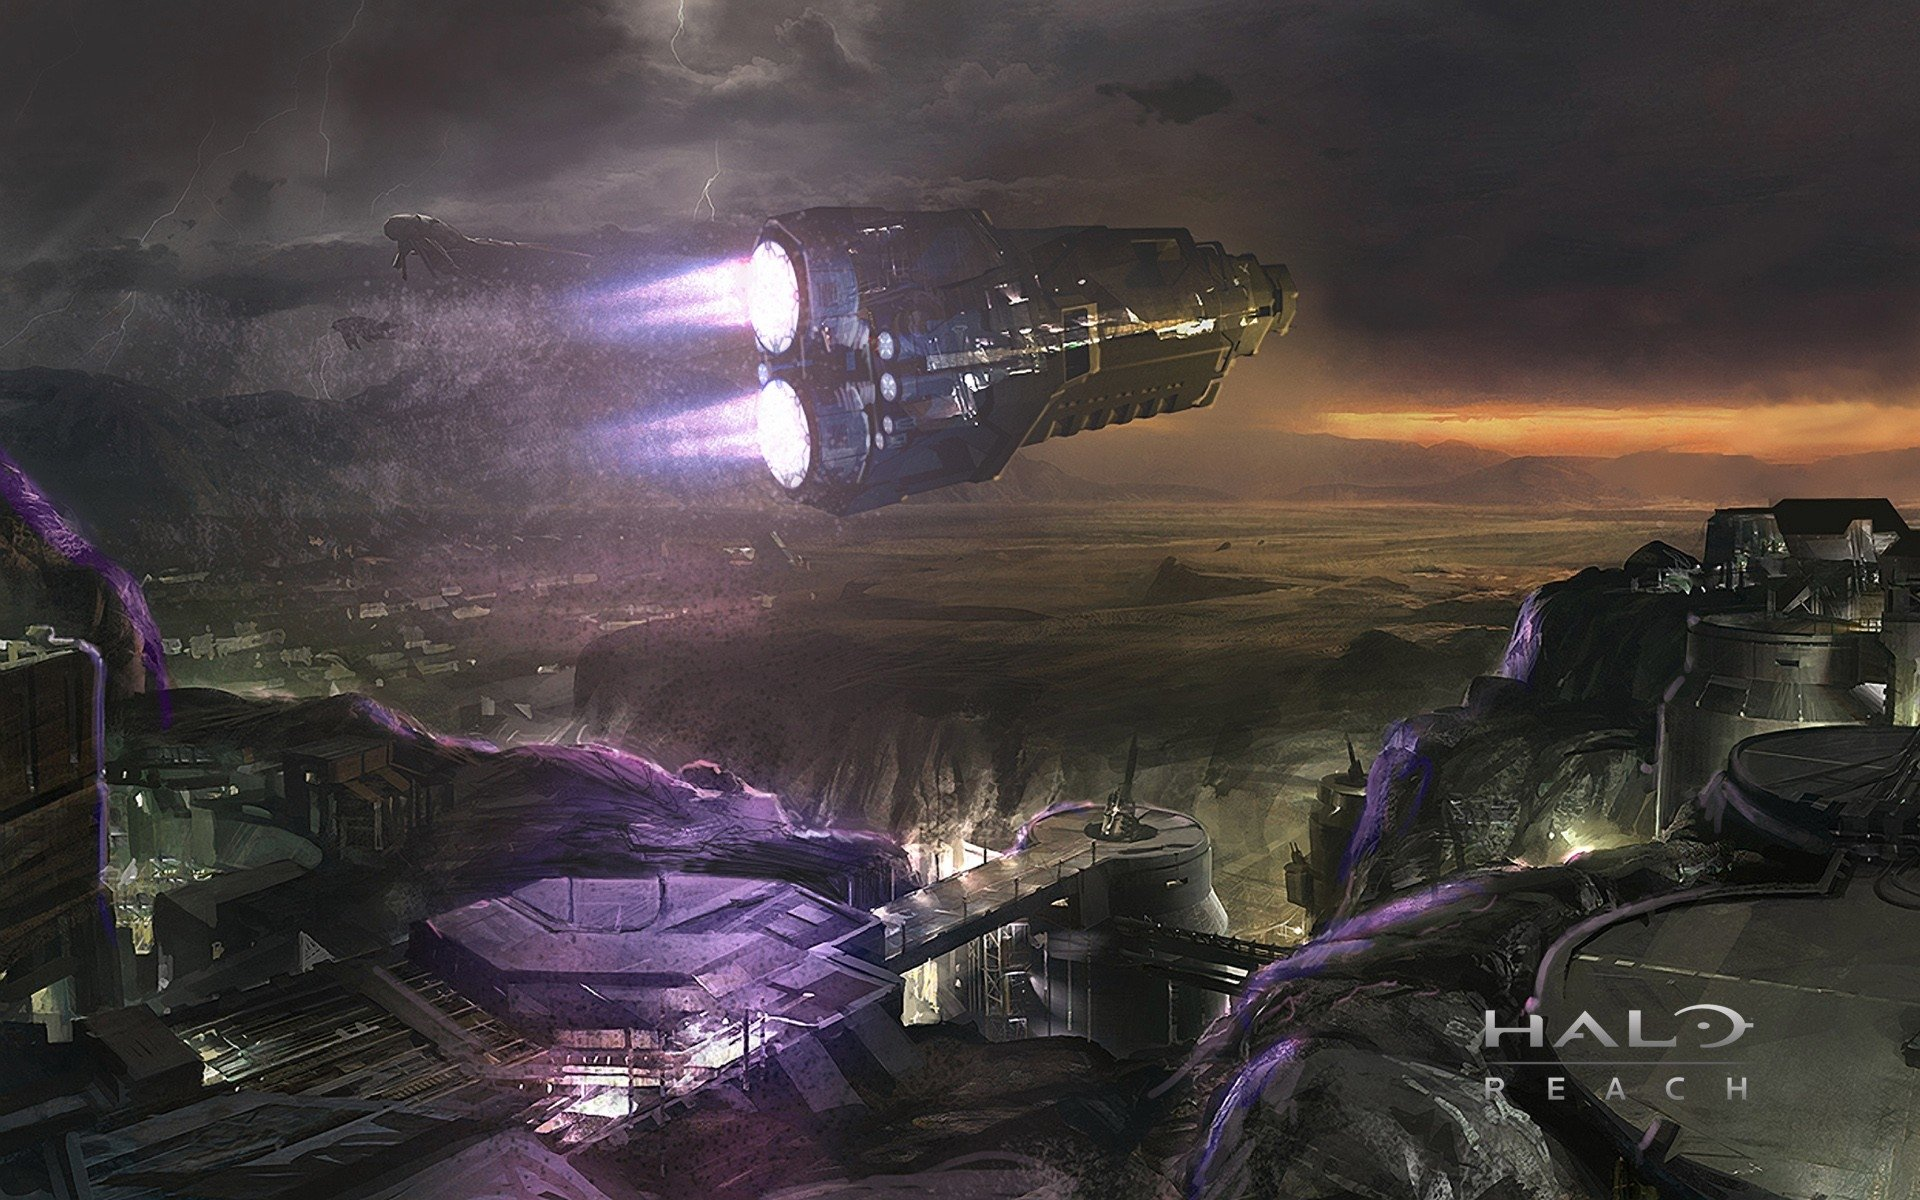 Halo Reach HD Wallpaper Background Image 1920x1200